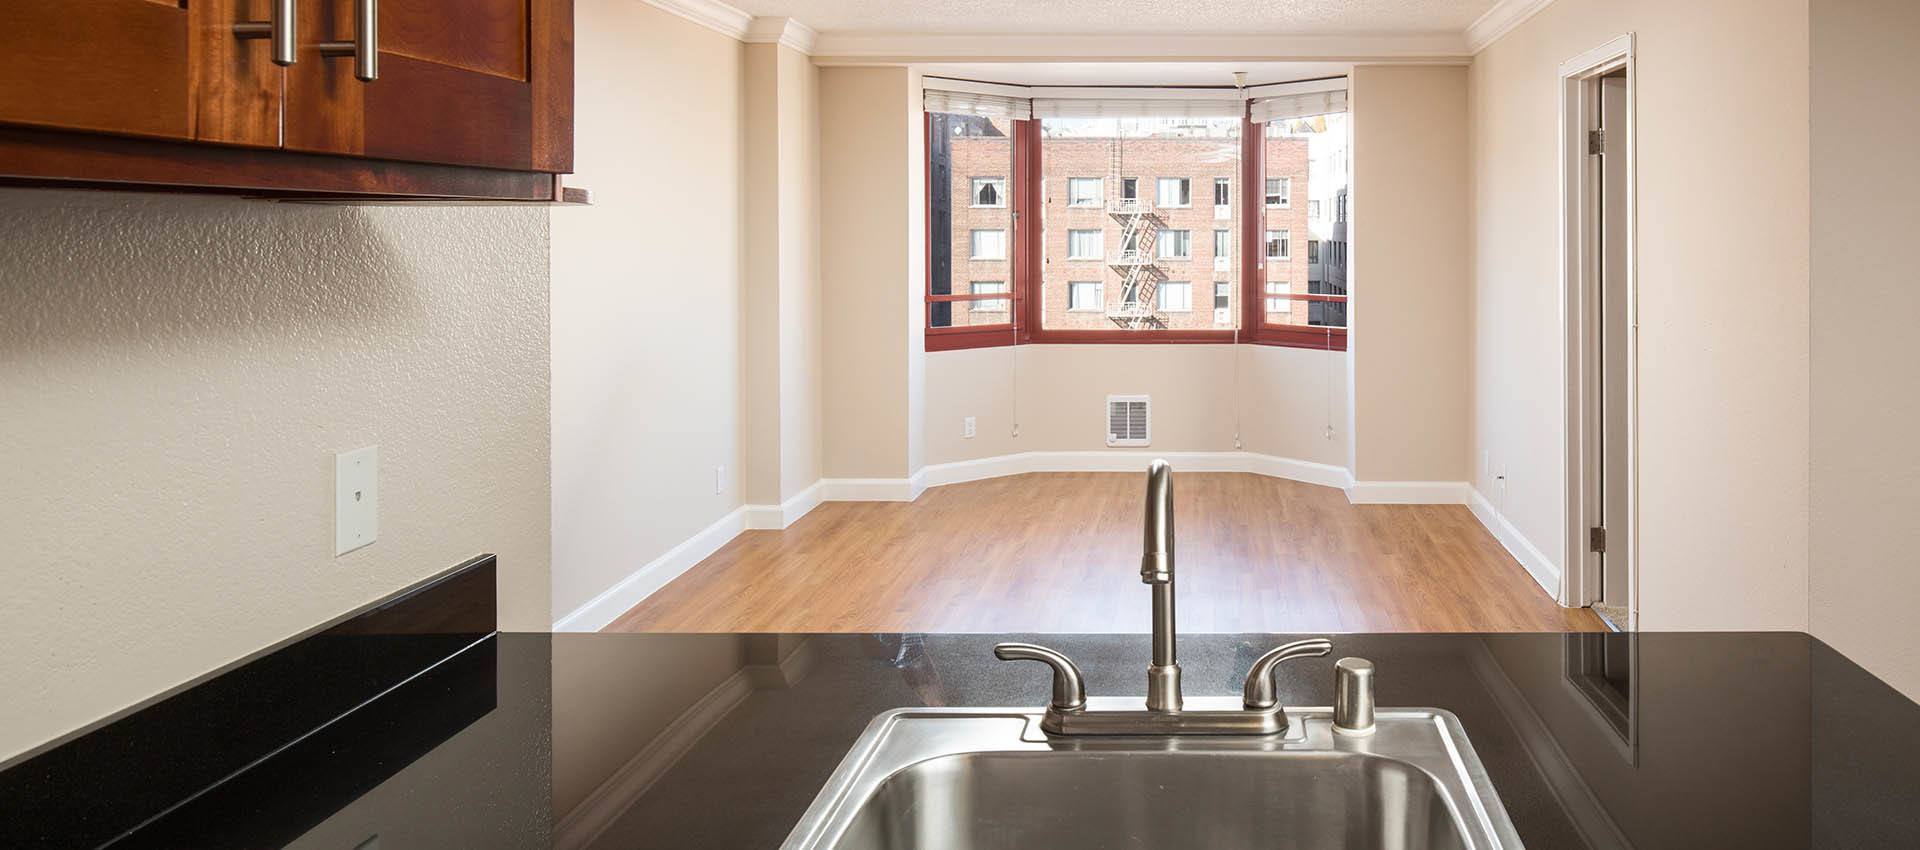 View From Kitchen With Stainless Steel Sink at Tower 737 Condominium Rentals in San Francisco